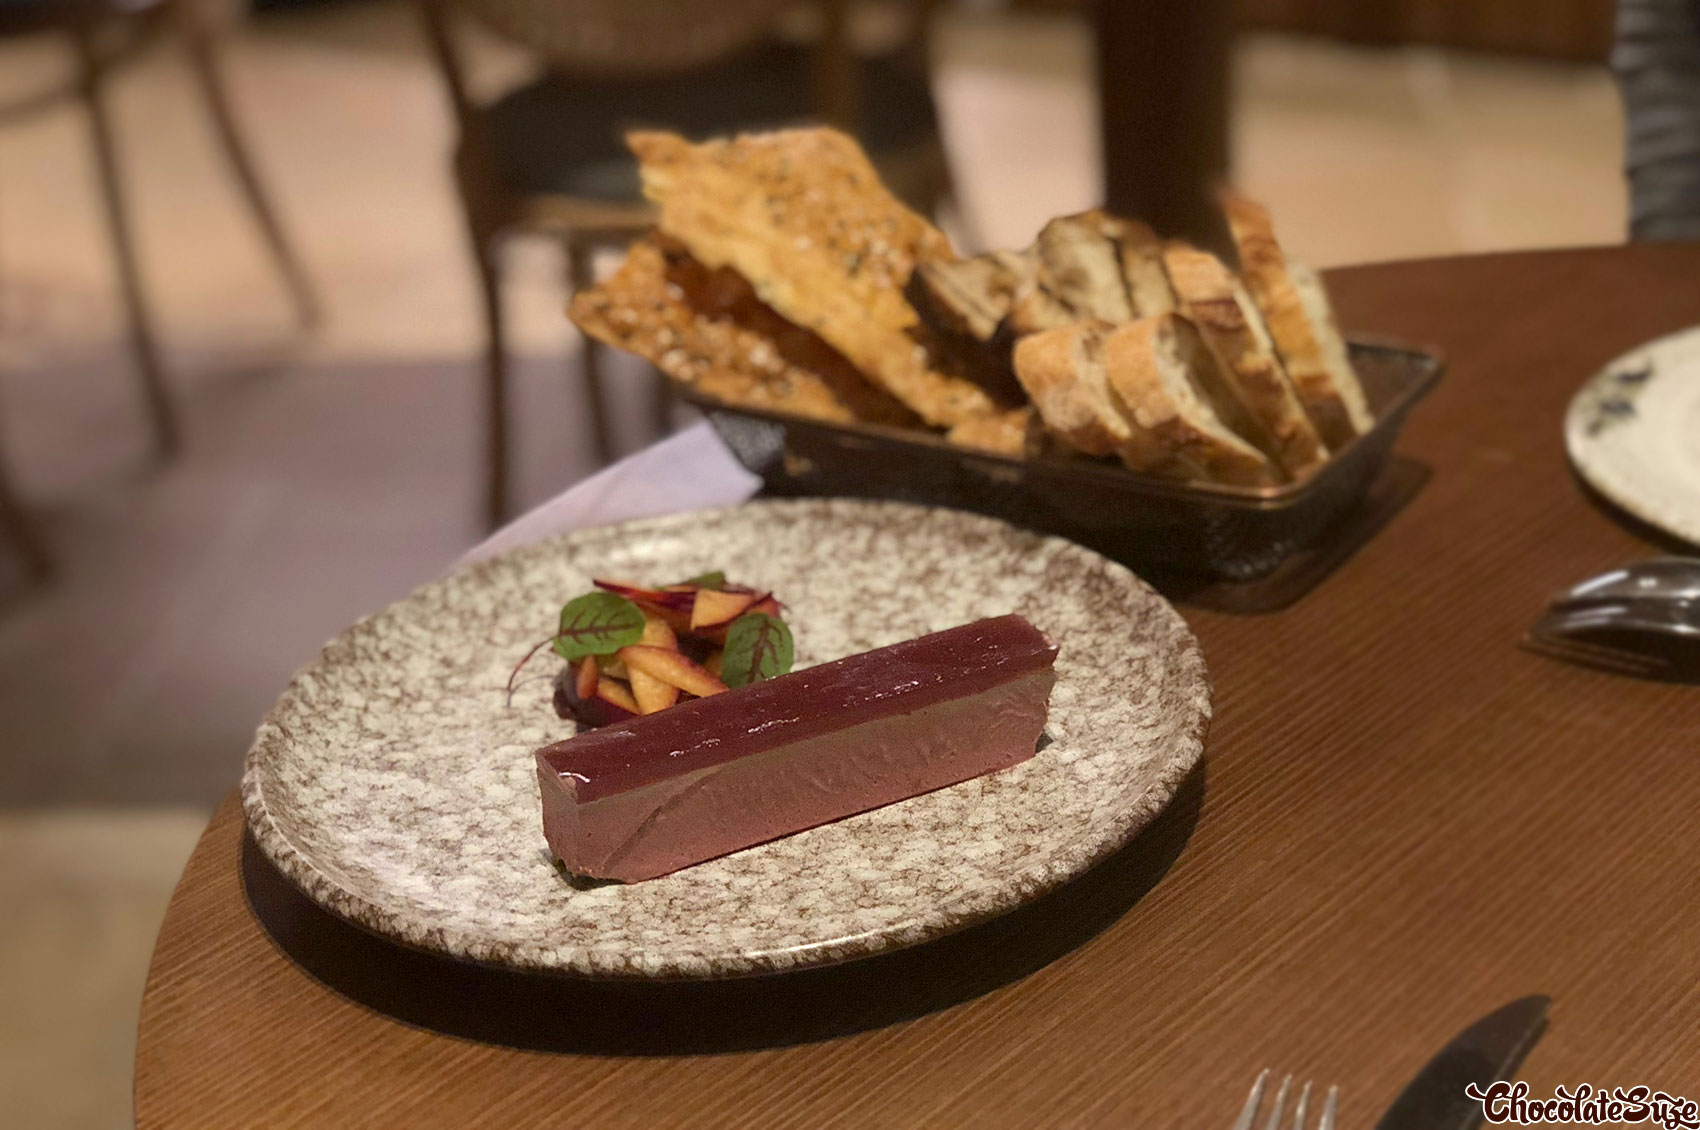 Pate at Ete, Barangaroo